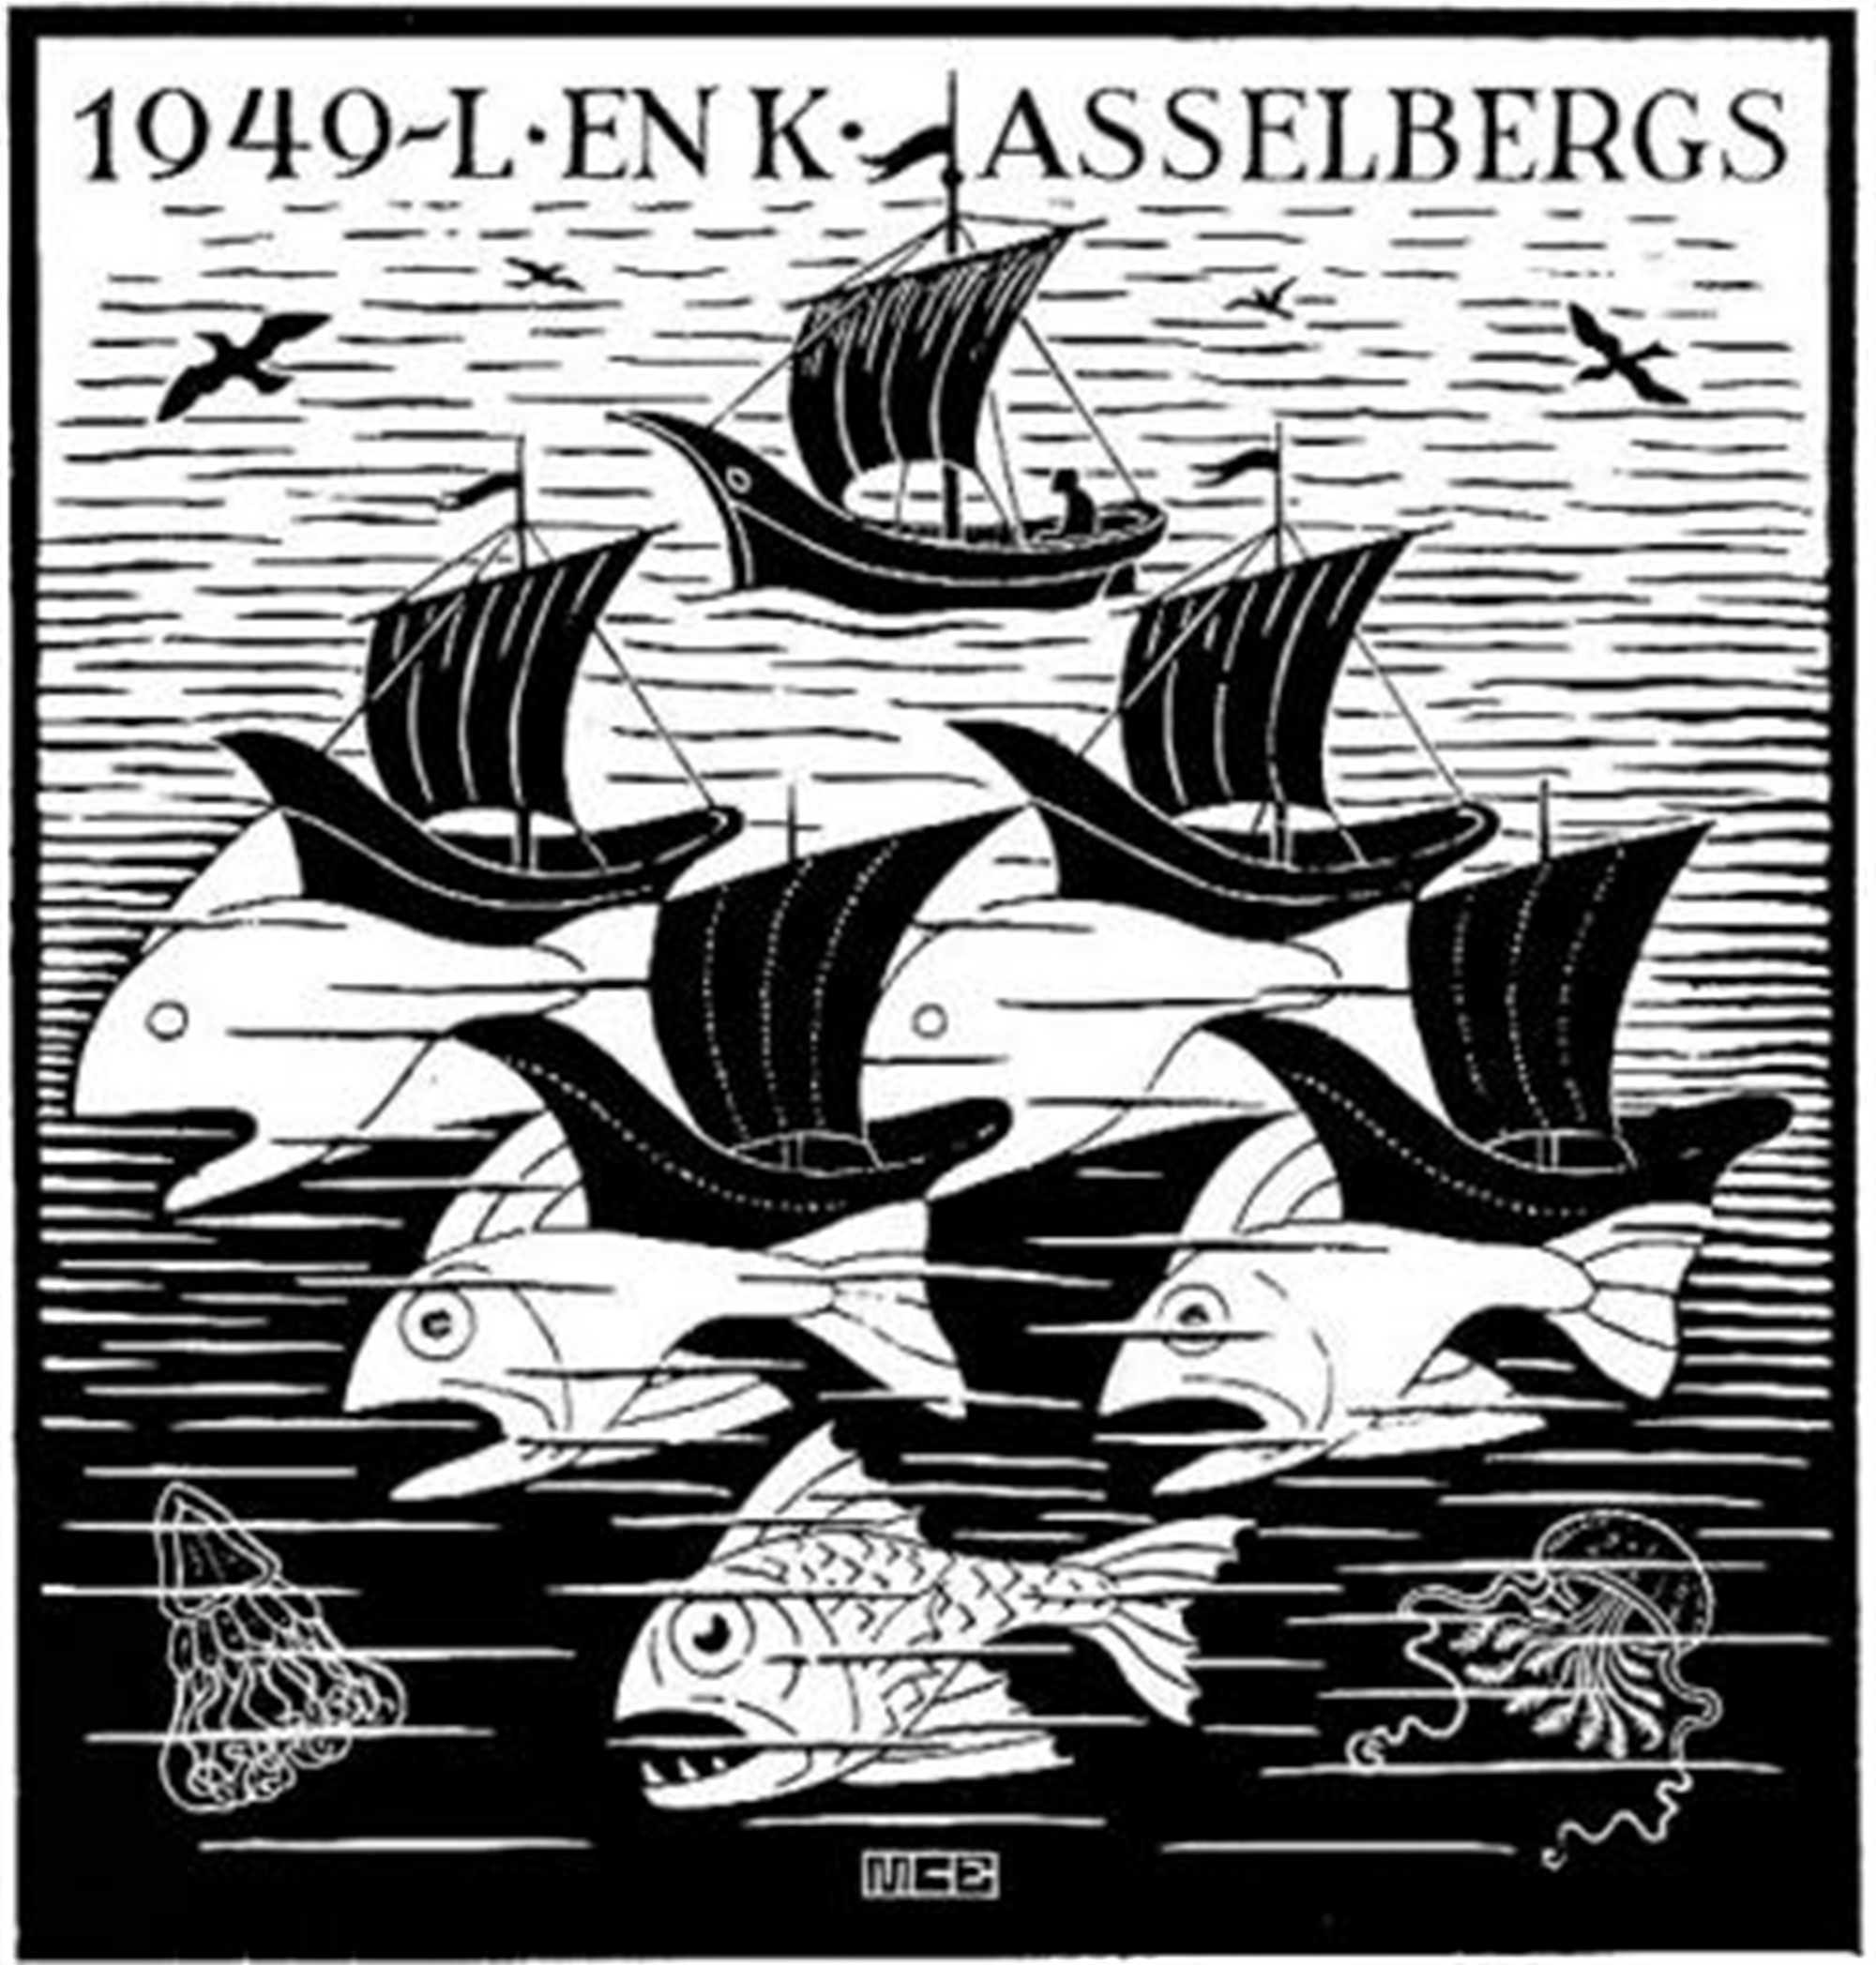 Boats and Fish by M.C. Escher